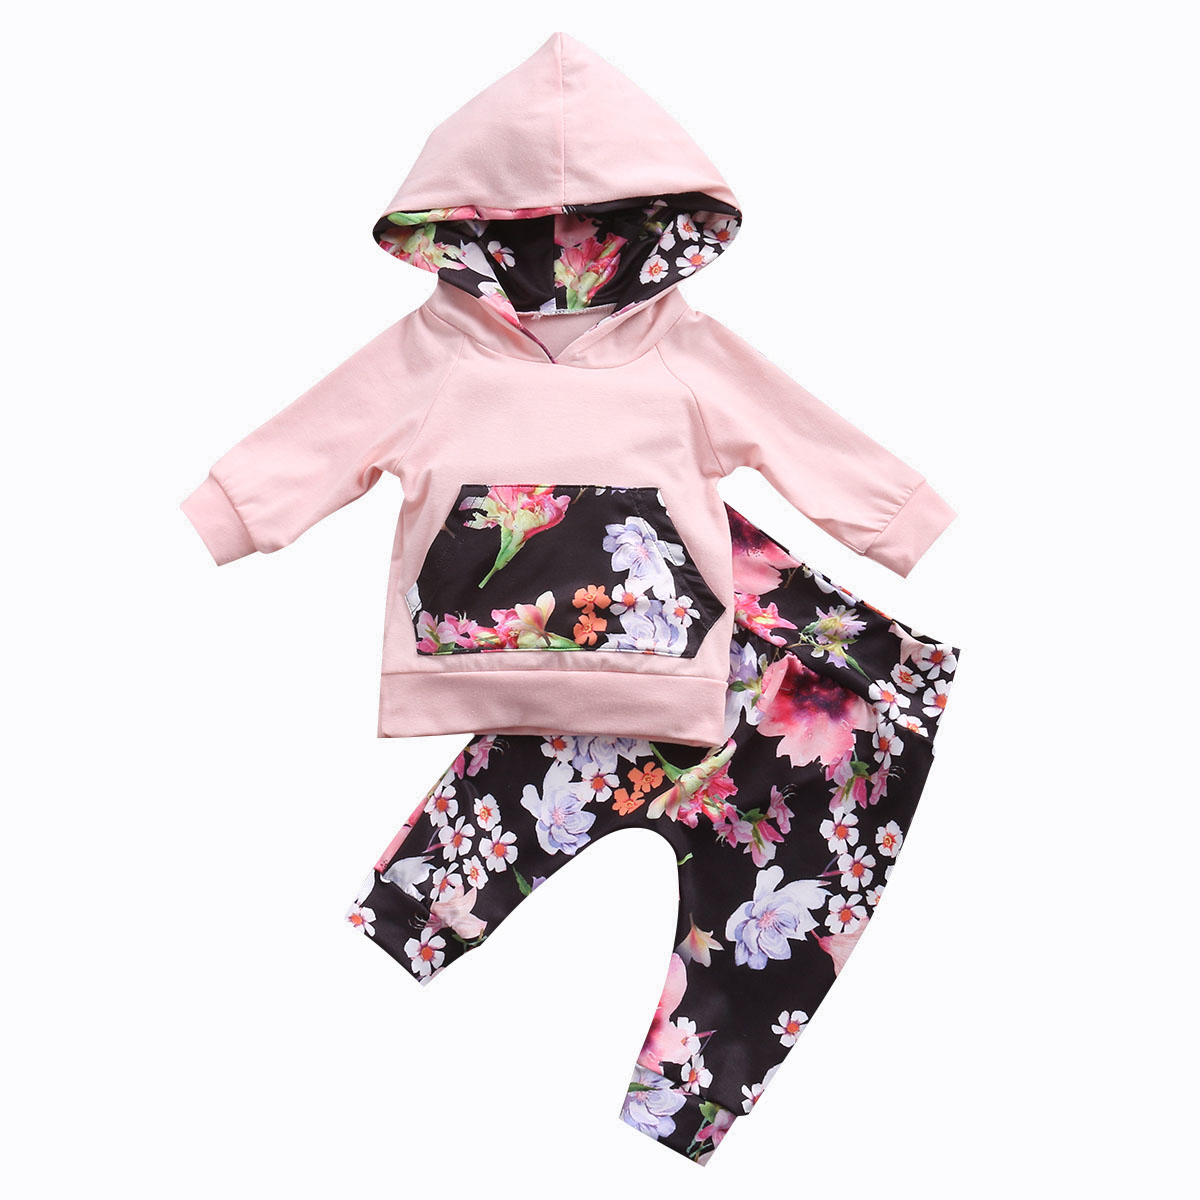 Cute Newborn Baby 2PCS Jumper Hooded Coat Tops+Floral Pants Outfit Clothing Spring Fall New Kids Infant Baby Girls Clothes Sets 2017 cool camouflage newborn baby boys clothes infant kids casual t shirt tops pants 2pcs outfit children clothing set 0 24m